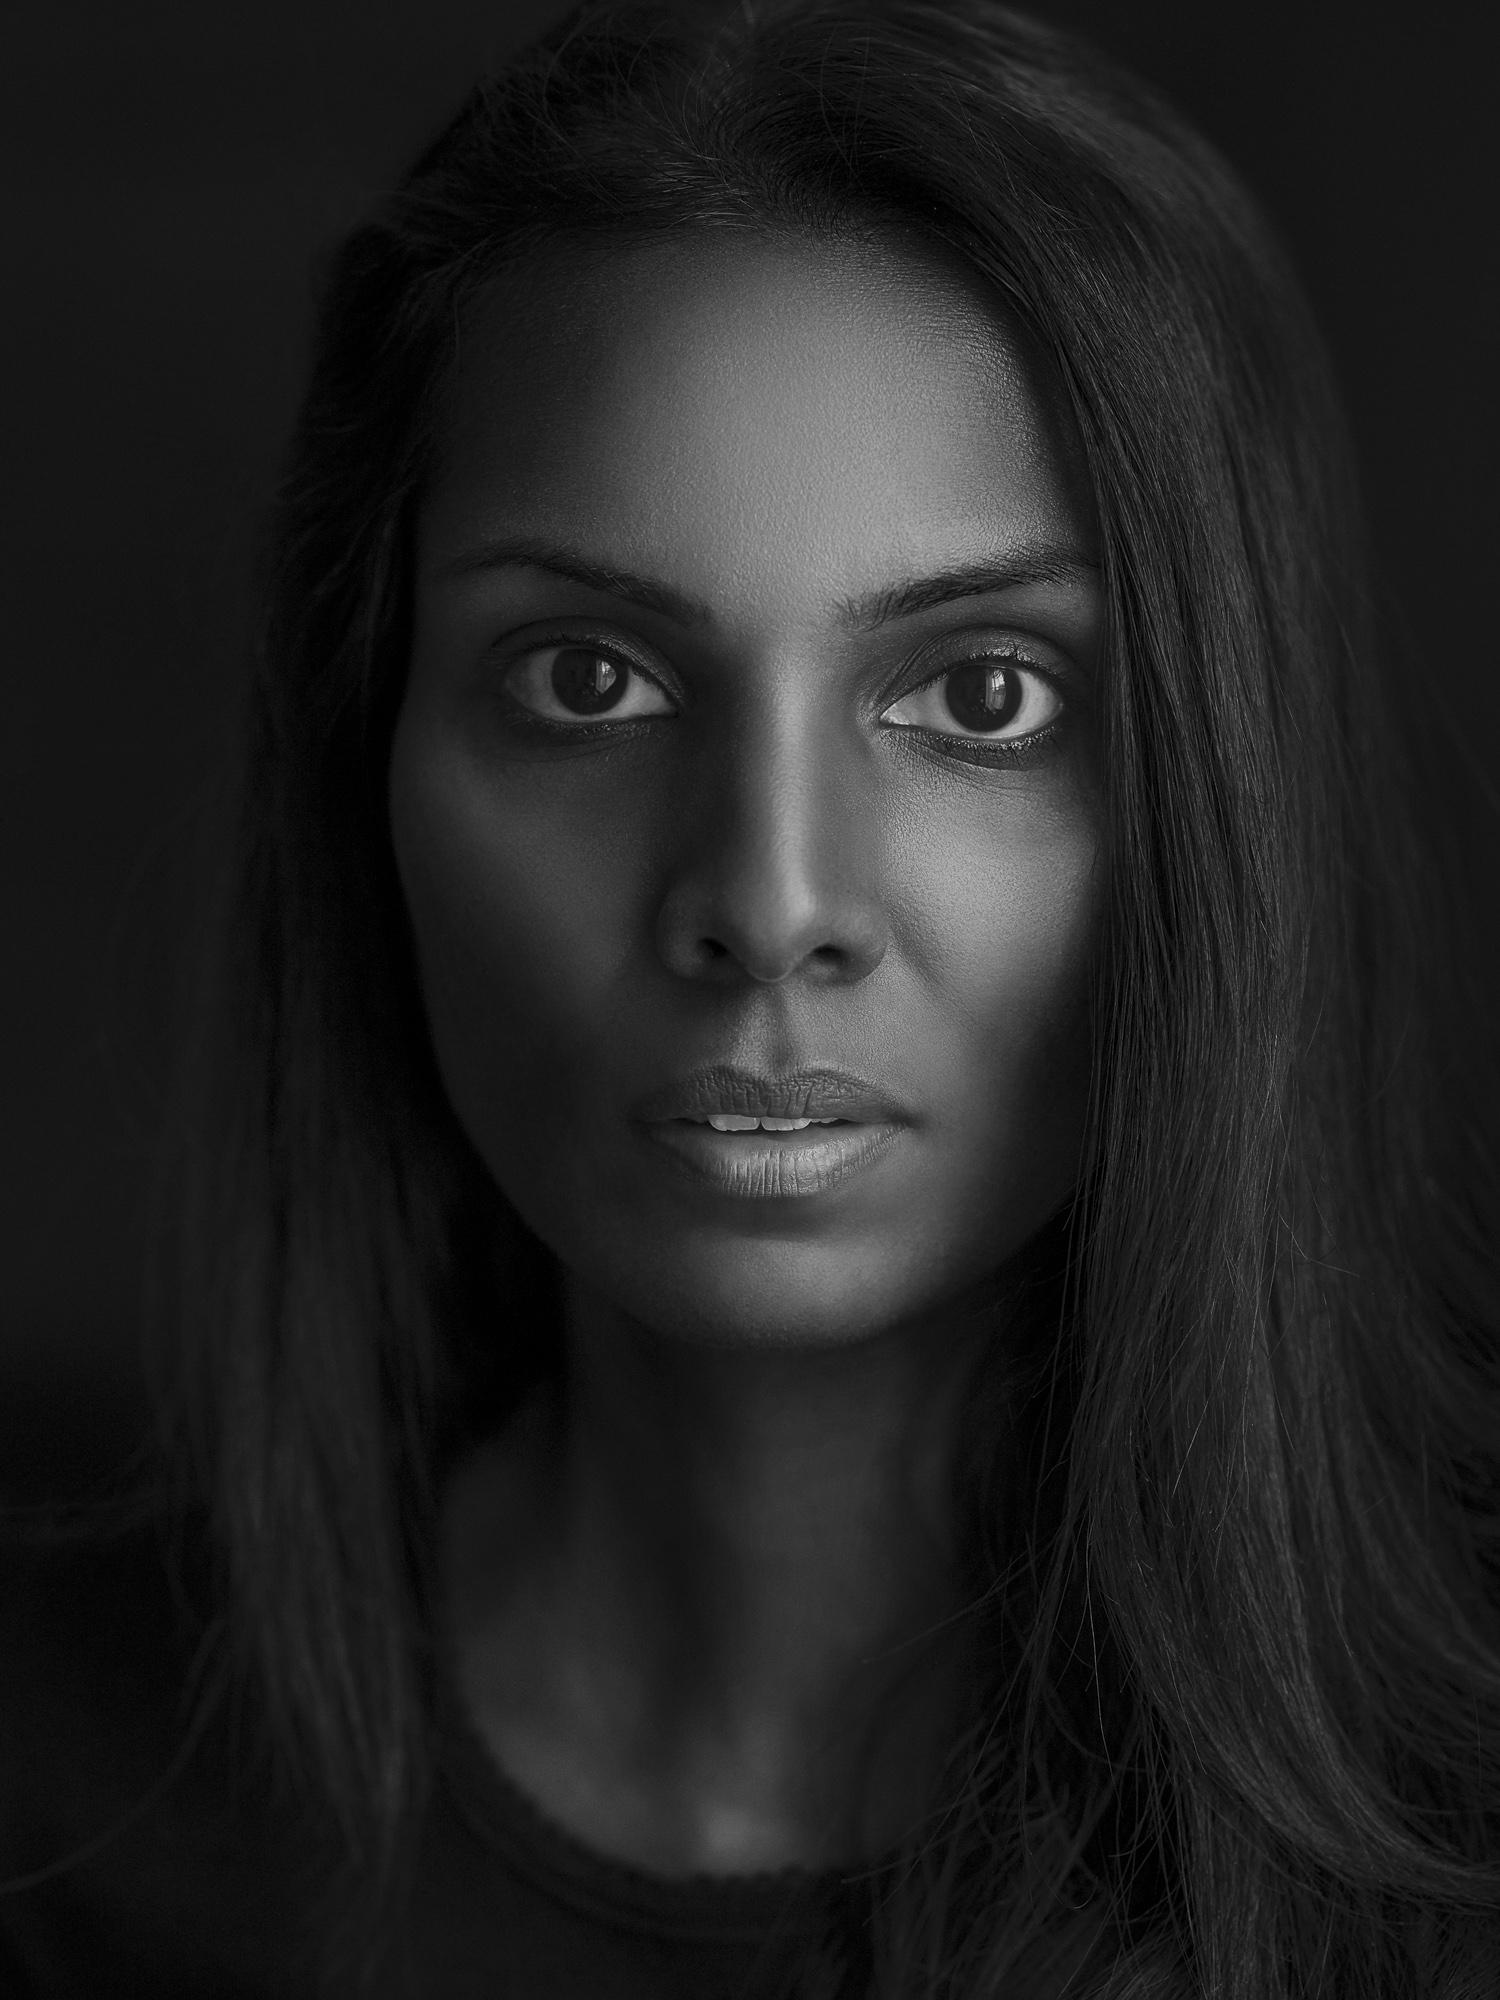 Portrait portraiture photography studio singapore services asia photographer Jose Jeuland shanthi deep black and white